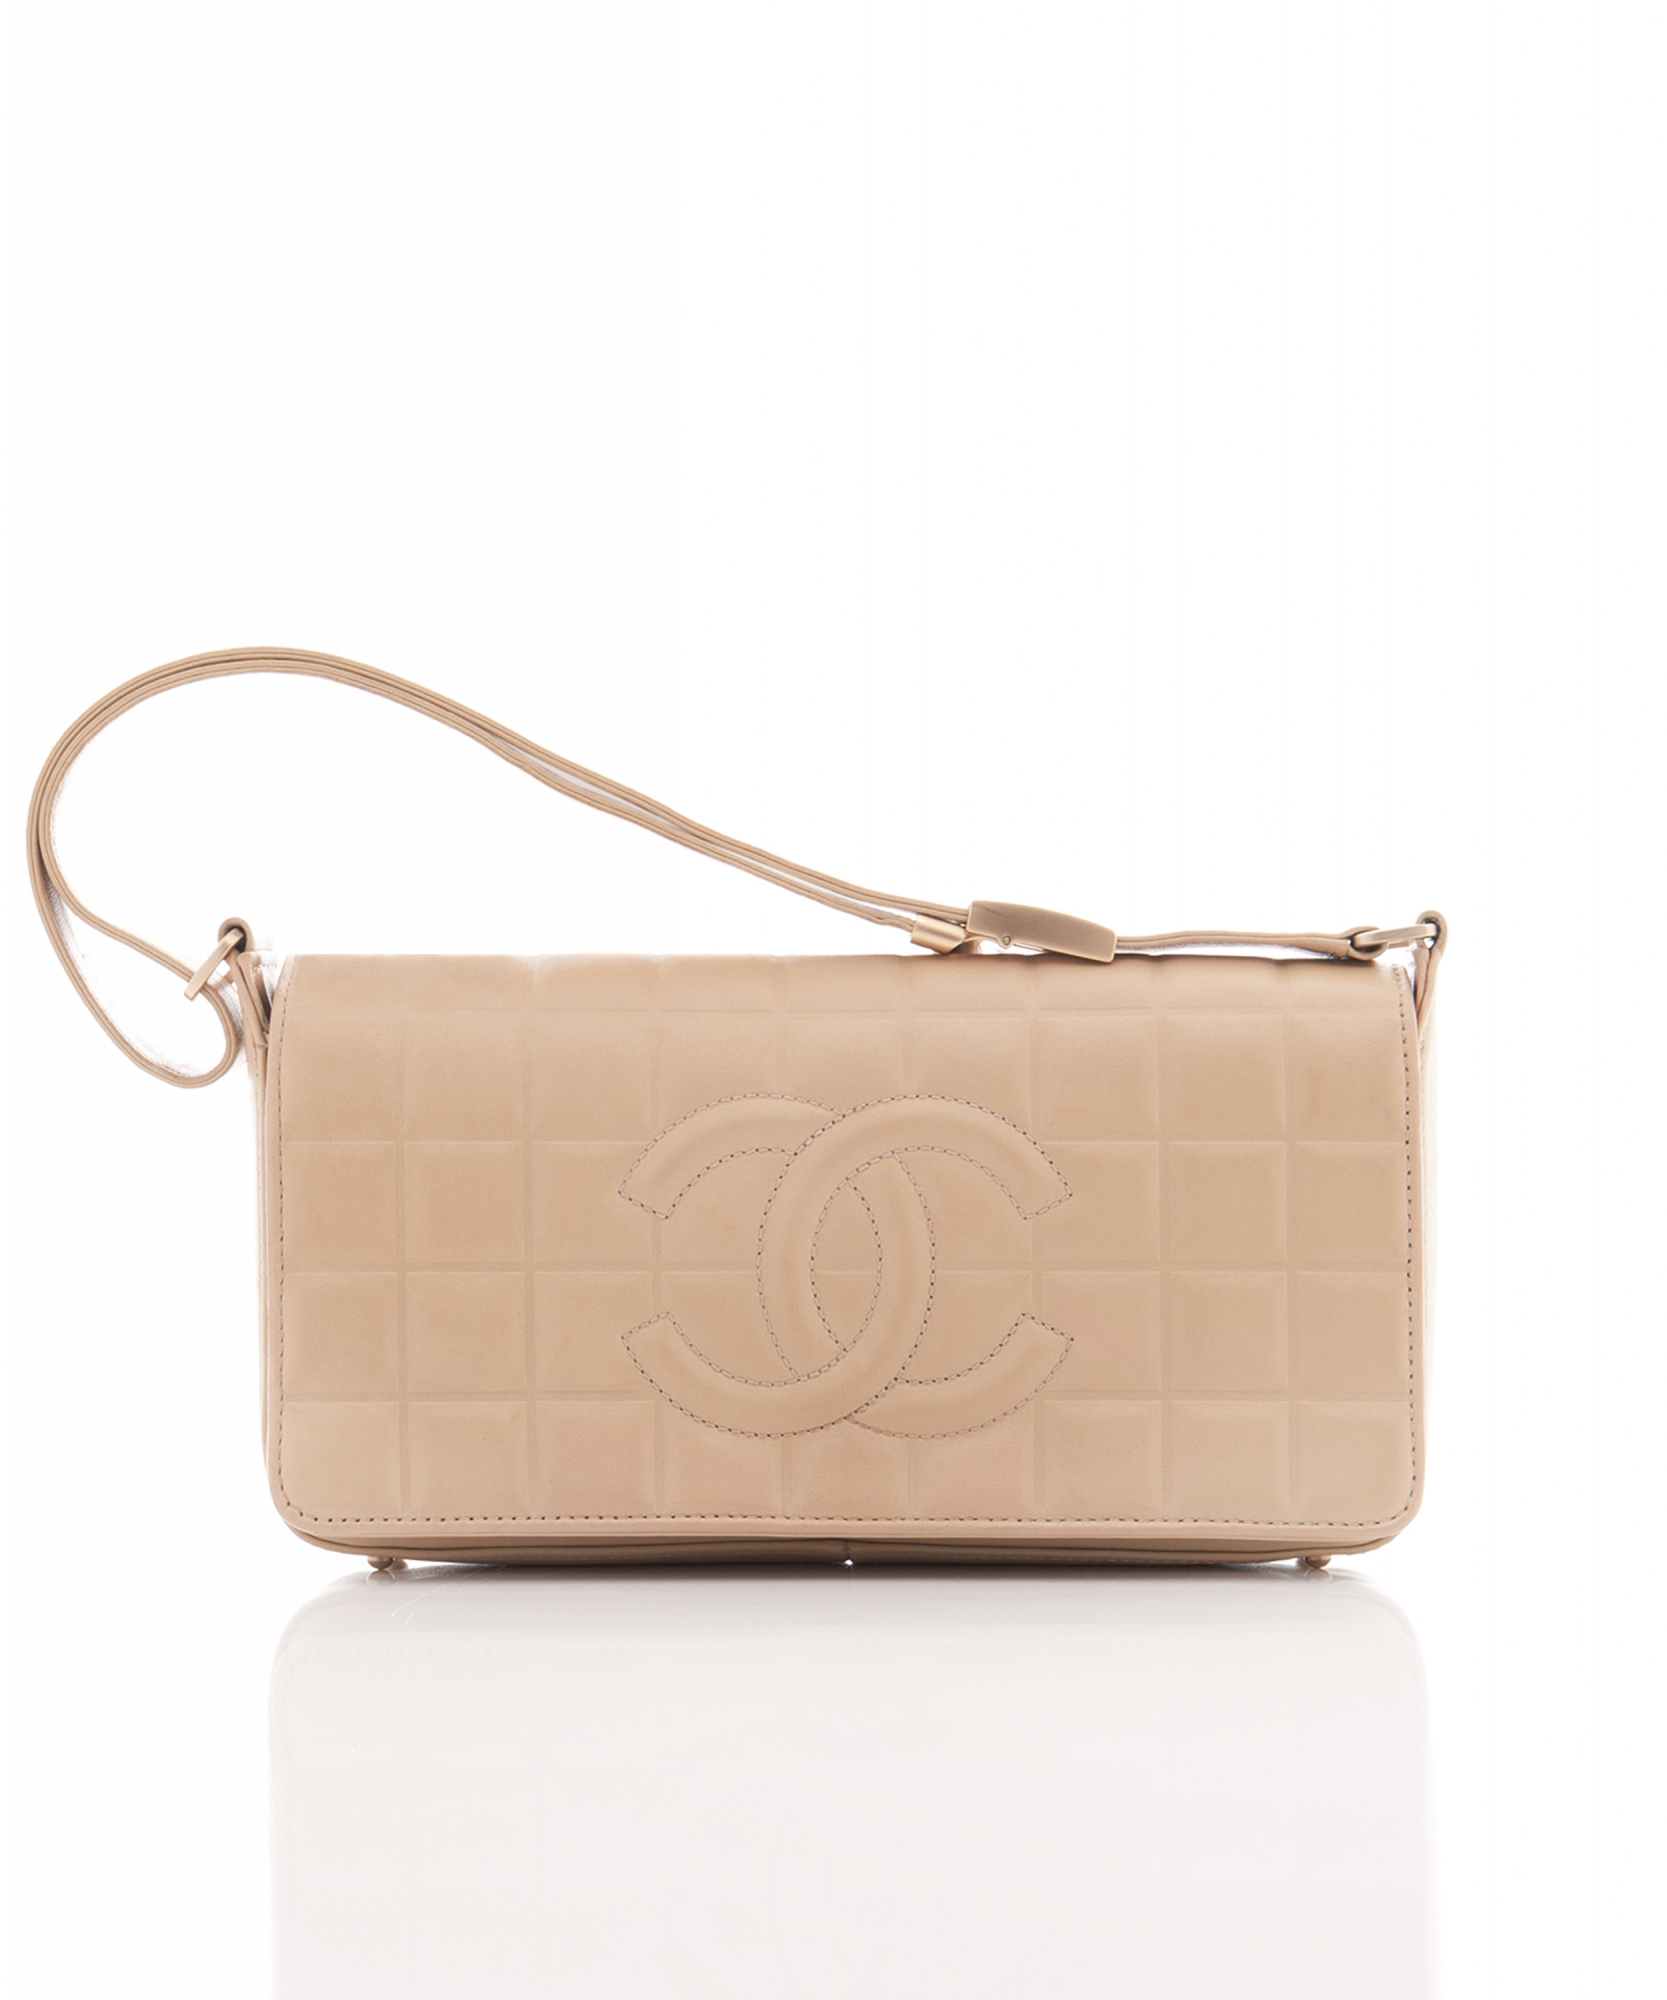 6e41473e6dee Chanel 'East West' Flap Bag in Tan Leather Chocolate Bar Pattern ...